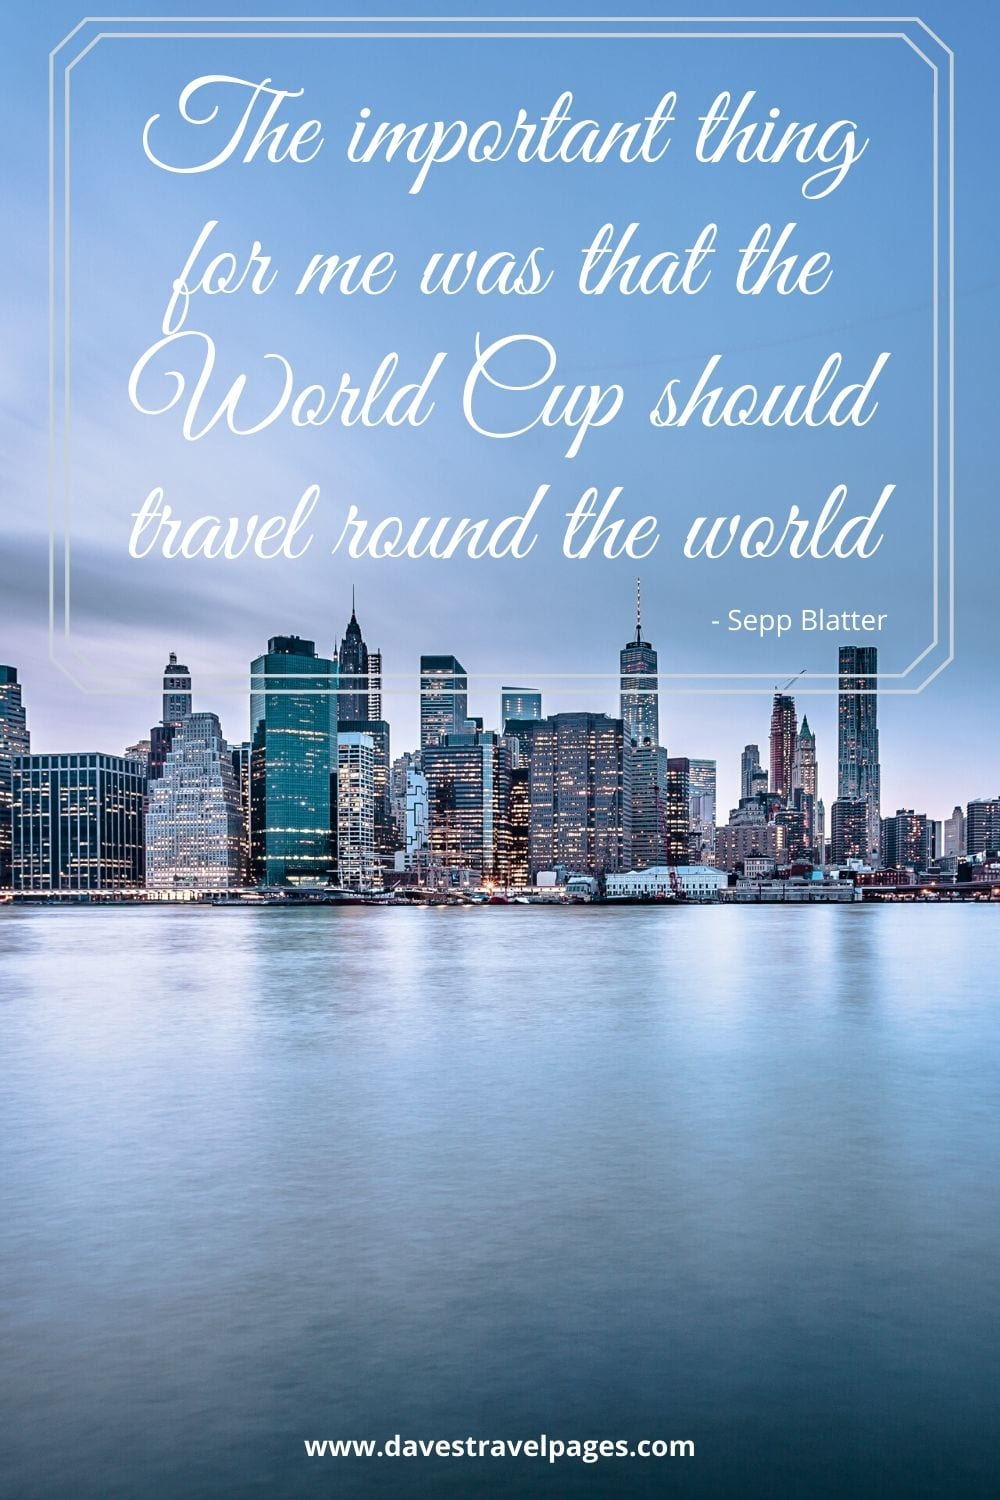 Quotes to do with travel: The important thing for me was that the World Cup should travel round the world. Sepp Blatter